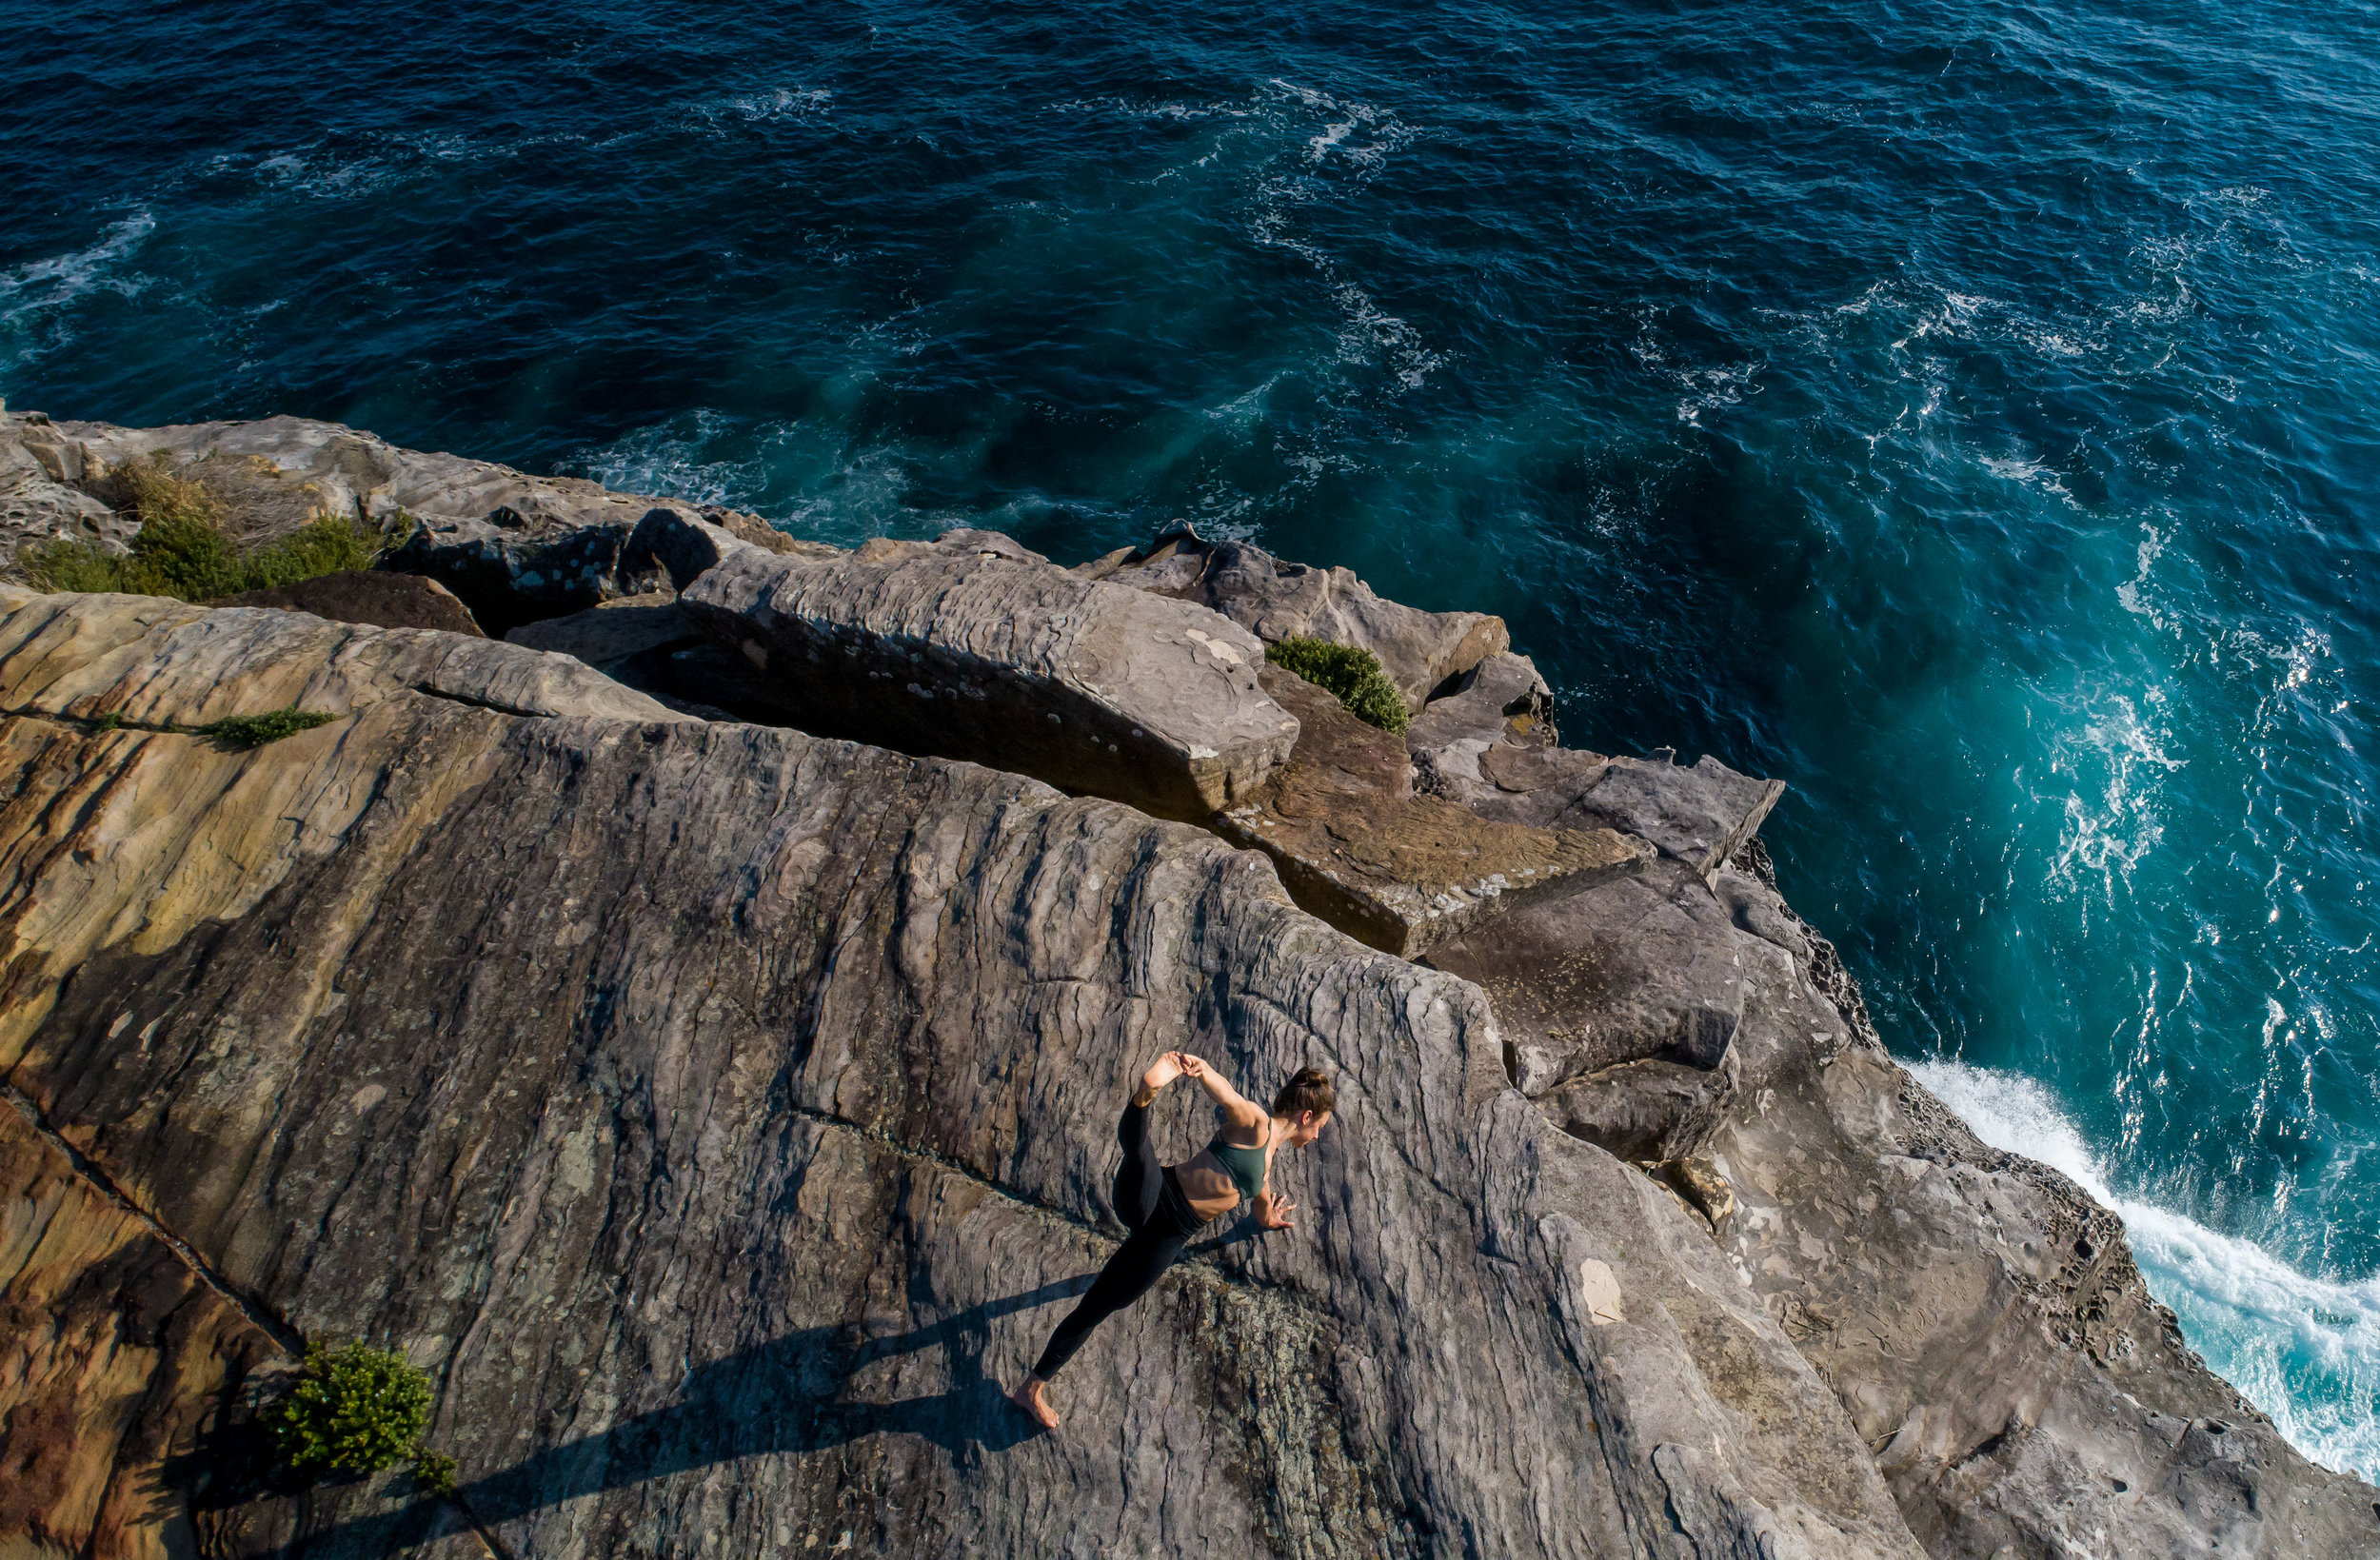 LM_180423_AndreaYoga_Drone_0010-Edit_HIGHres.jpg